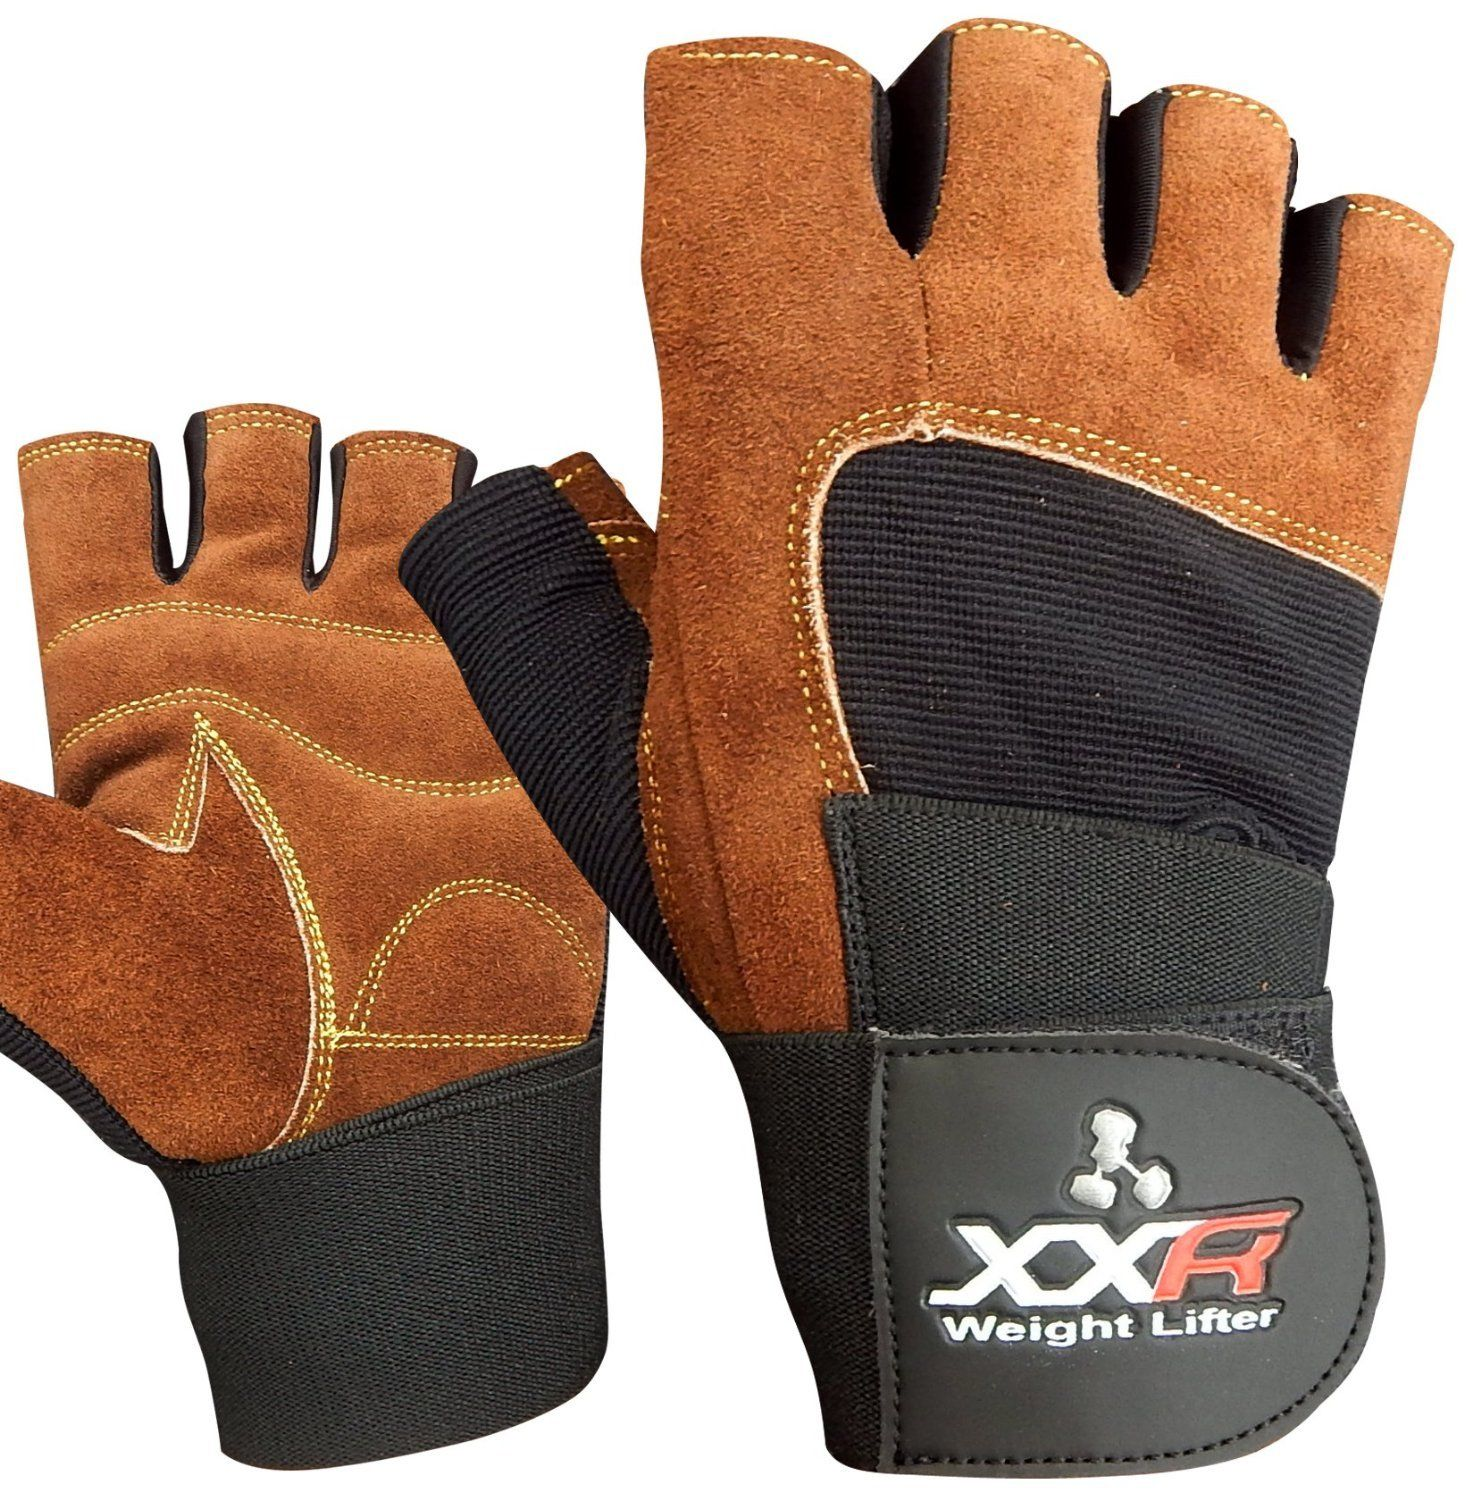 Chzl Mens Au Leather Velcro Weight Lifting Fitness: XXR BROWN Weight Lifting Gloves Strengthen Training